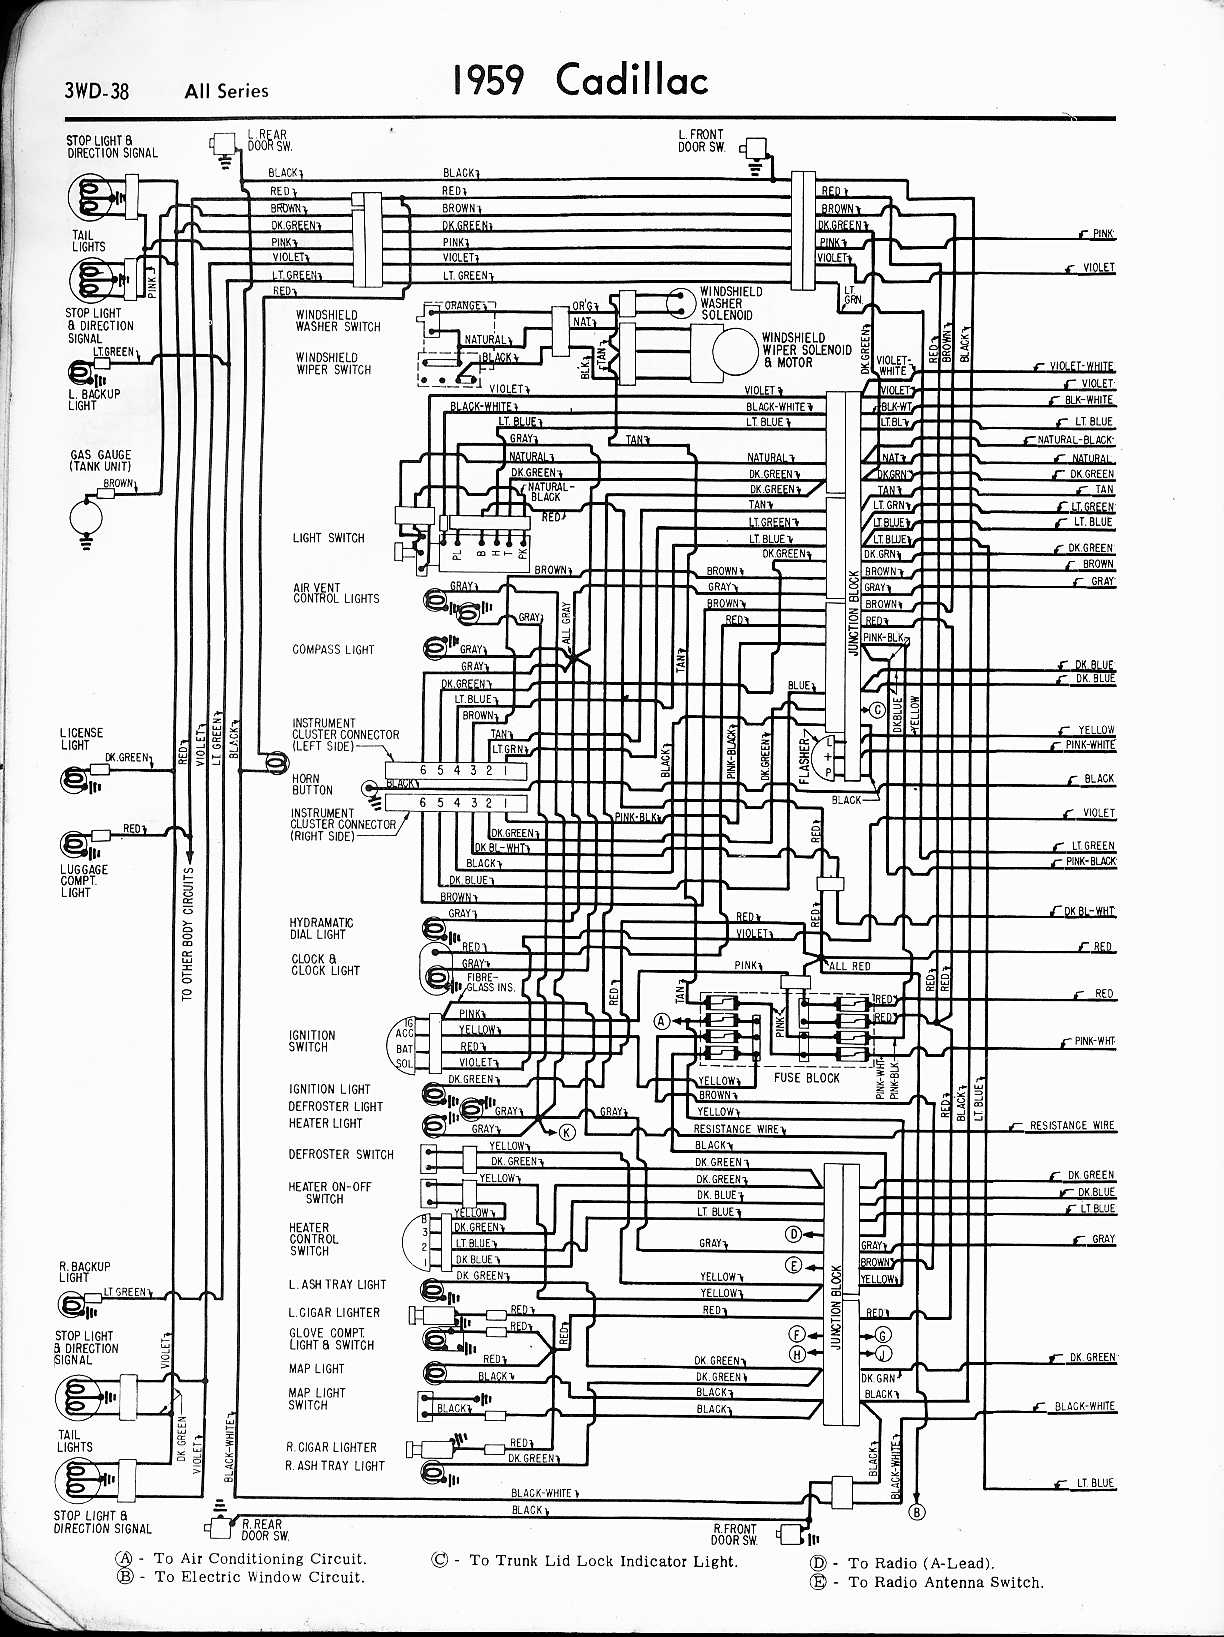 1966 f100 wiring diagram 1966 cadillac wiring diagram